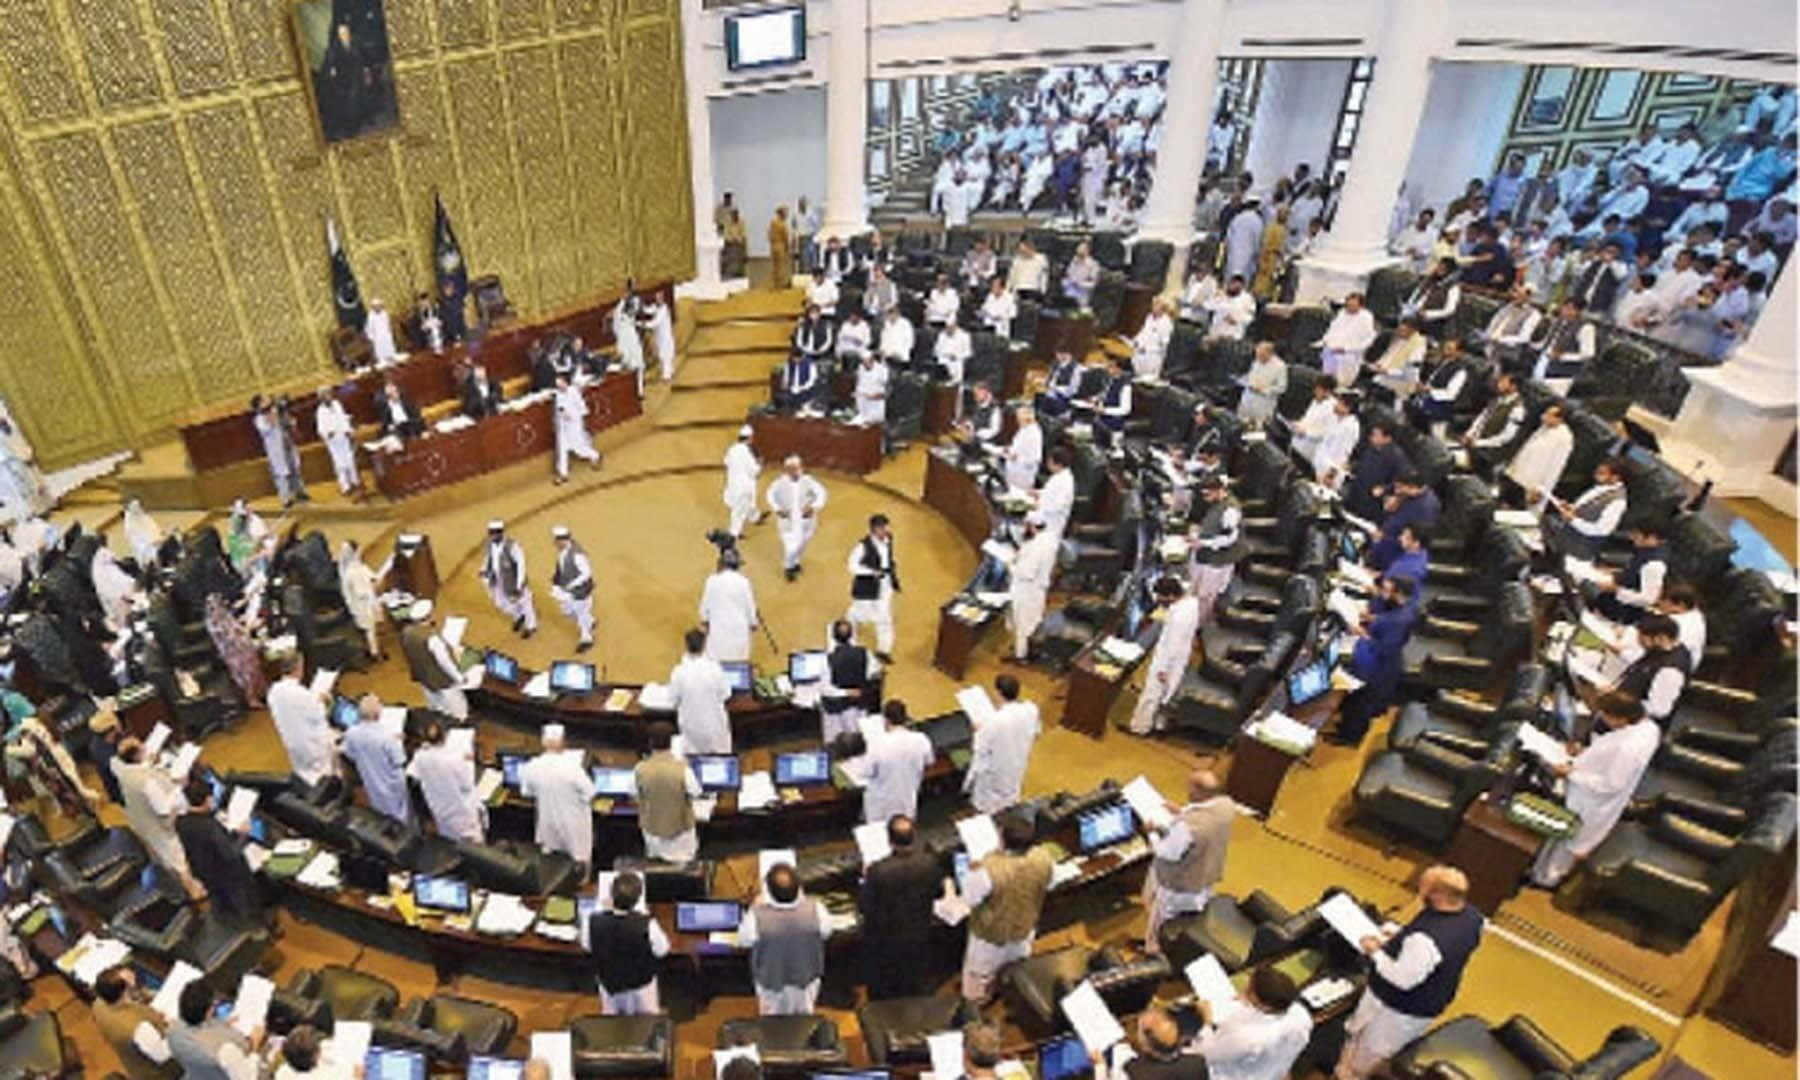 The Khyber Pakhtunkhwa Assembly witnessed pandemonium on Monday after the chair refused to allow members from the merged tribal districts to discuss the controversial recruitment of male and female nurses by the health directorate in the erstwhile Fata. — Photo courtesy Abdul Majeed Goraya/File